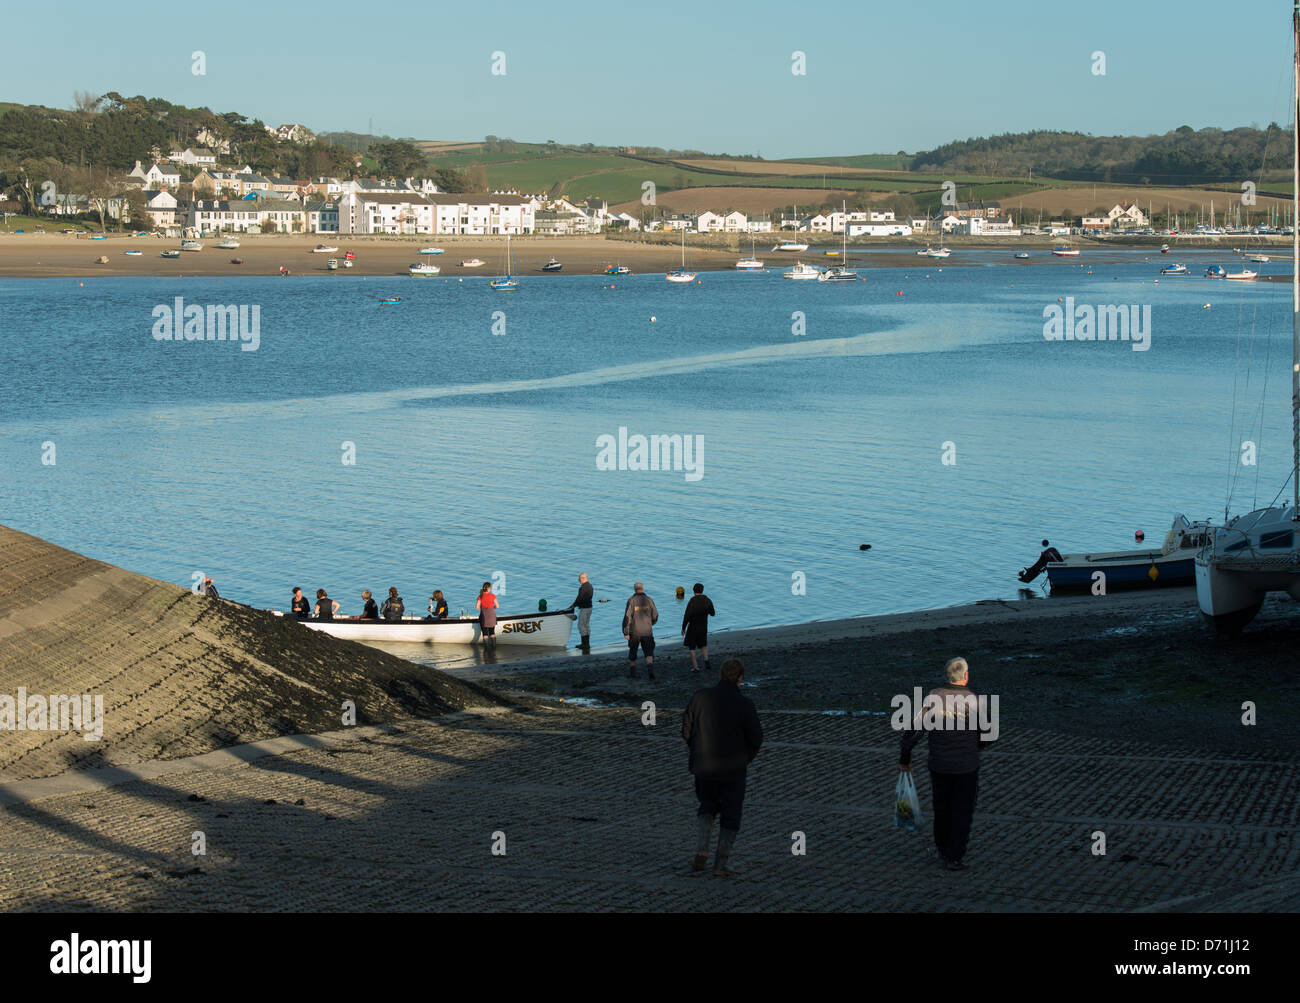 Appledore, North Devon, England. A rowing team is embarking from clinker rowing gig on the river Torridge. - Stock Image